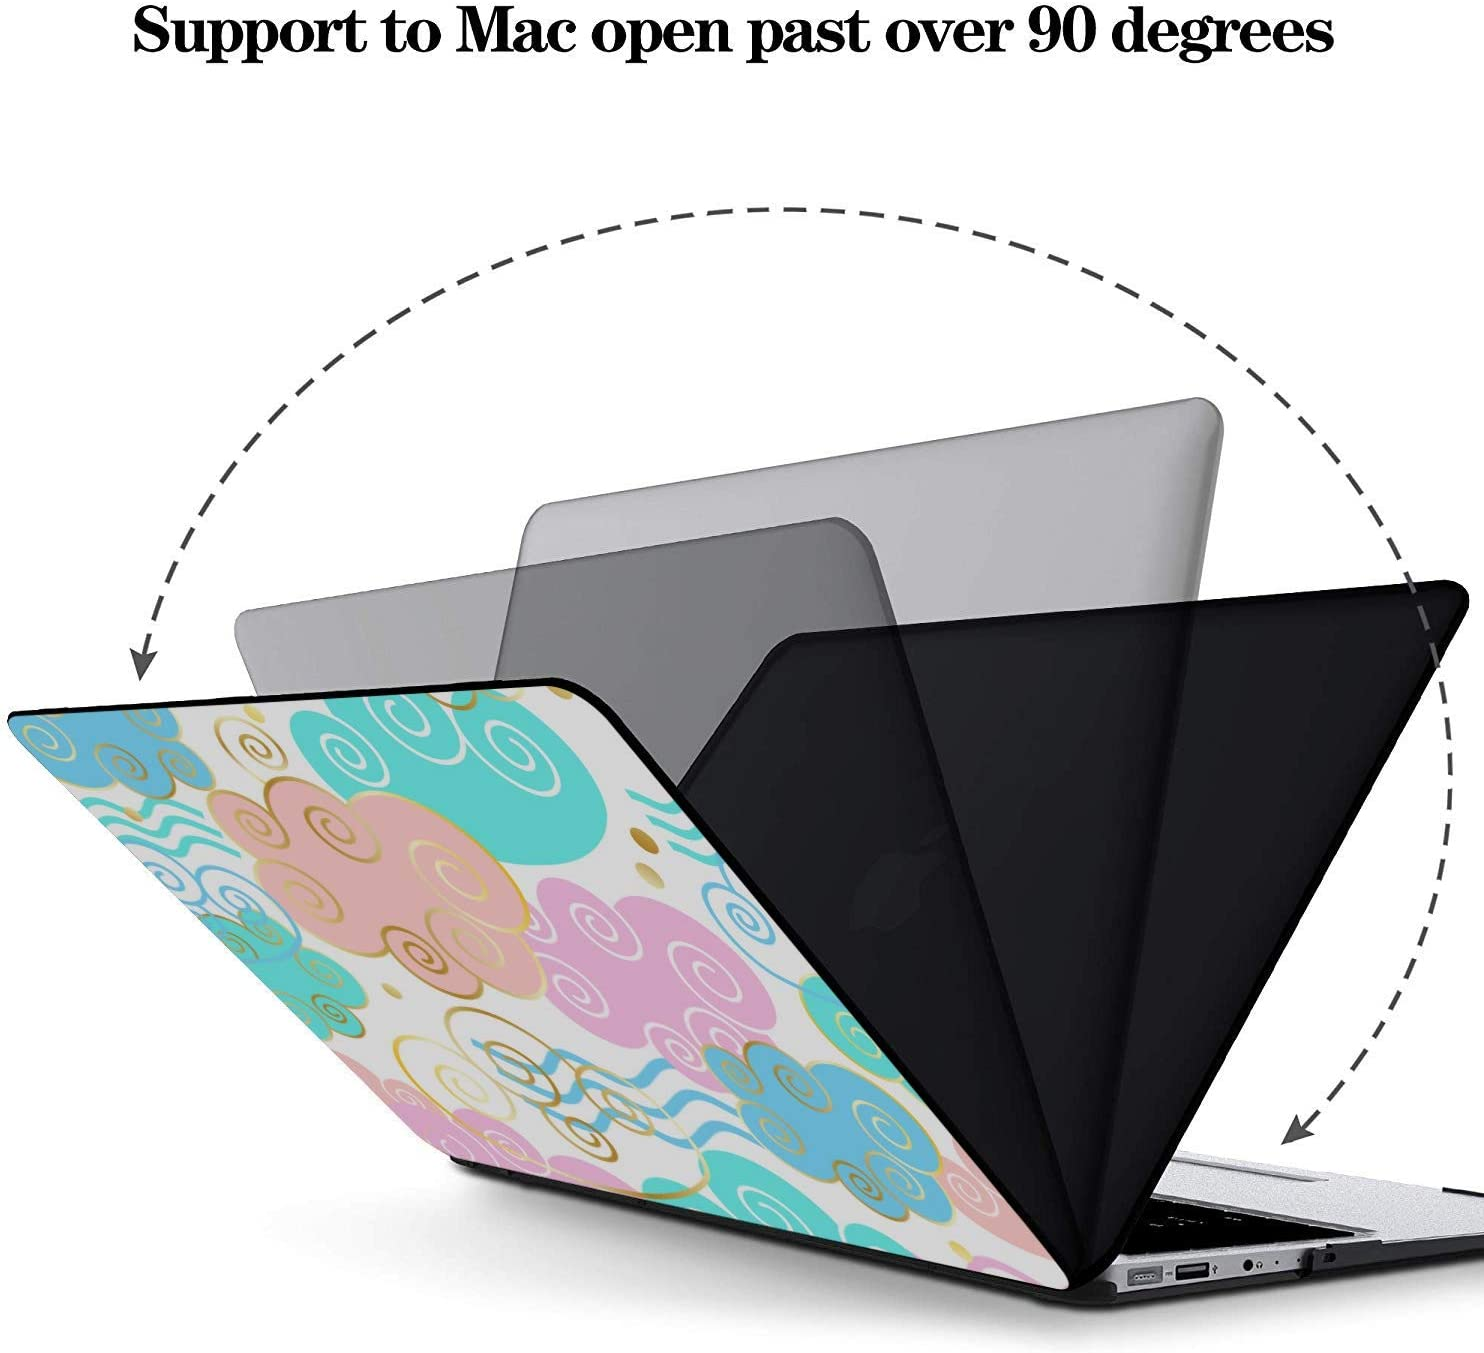 MacBook Pro Accessories Shining Colorful Romantic Art Gift Plastic Hard Shell Compatible Mac Air 11 Pro 13 15 MacBook Accessories 13 Inch Protection for MacBook 2016-2019 Version